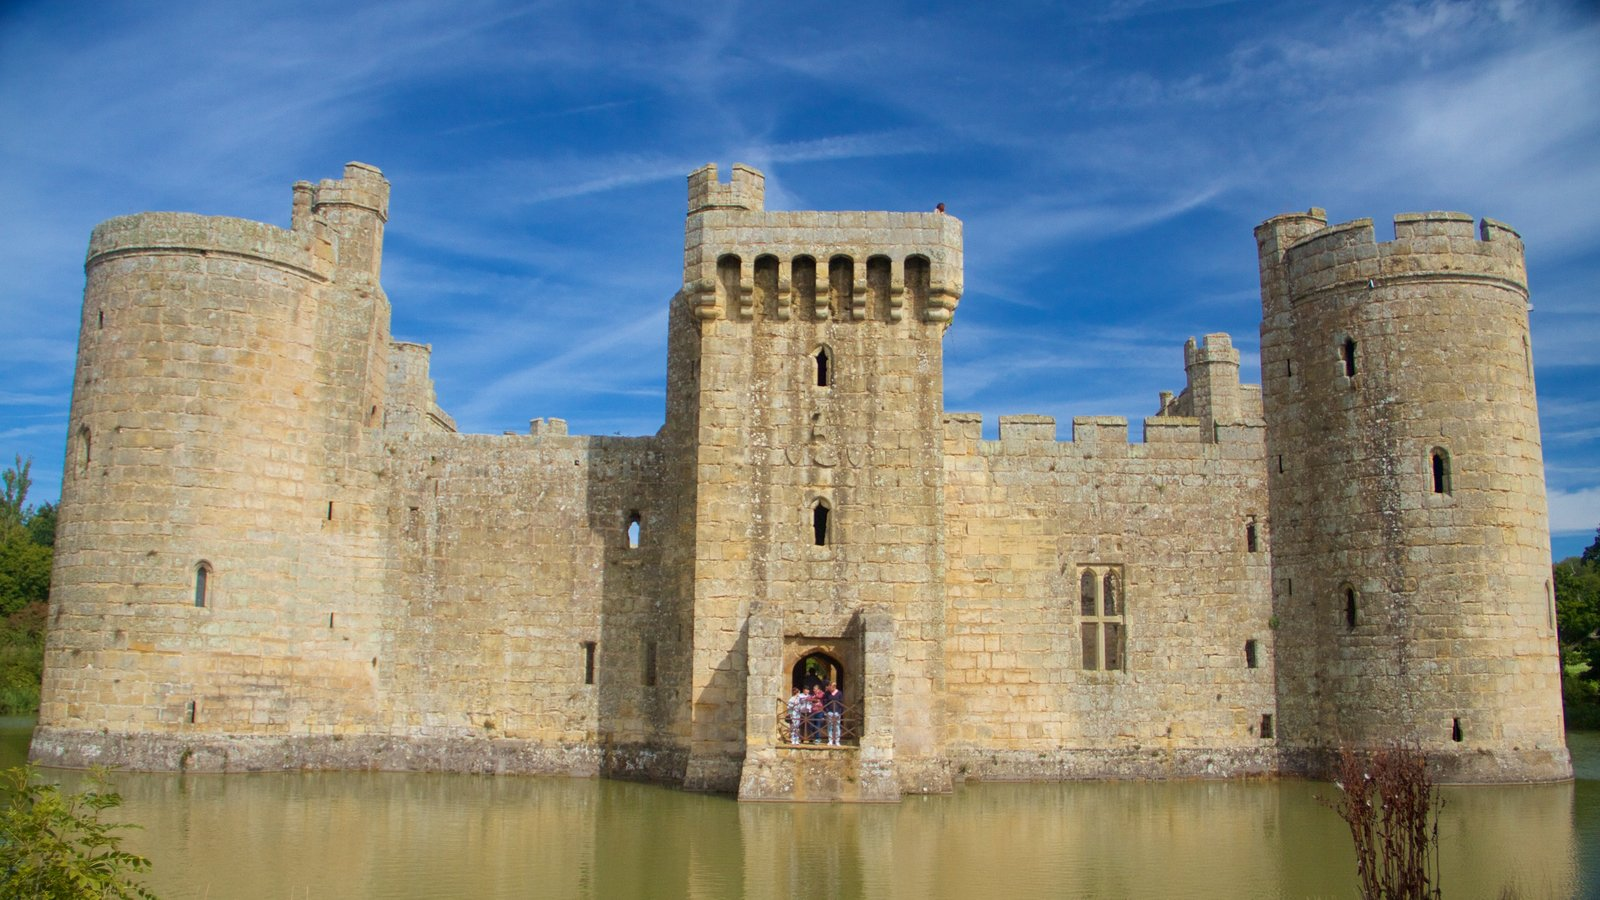 Bodiam Castle featuring heritage elements and a castle